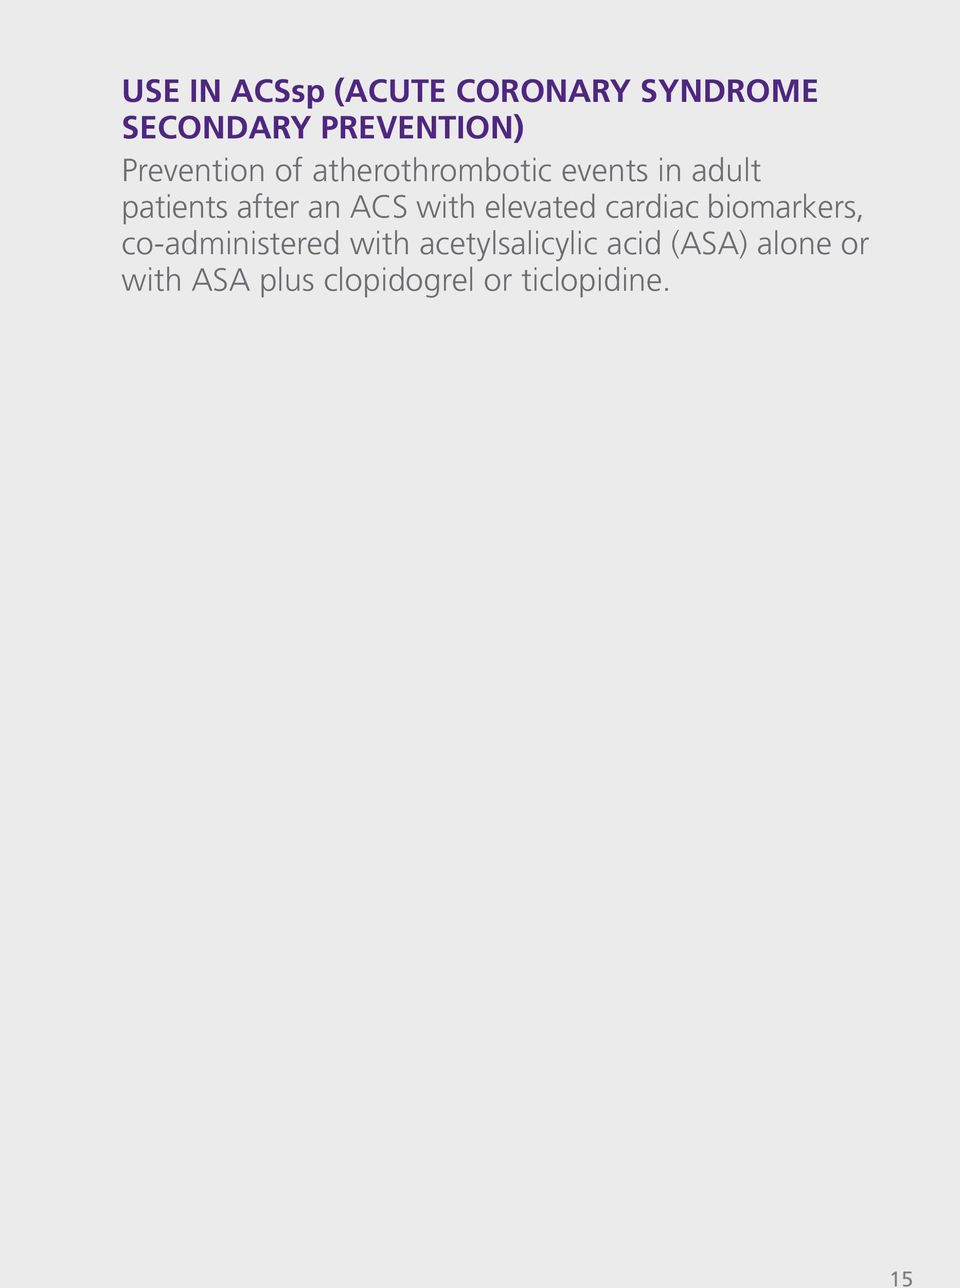 ACS with elevated cardiac biomarkers, co-administered with